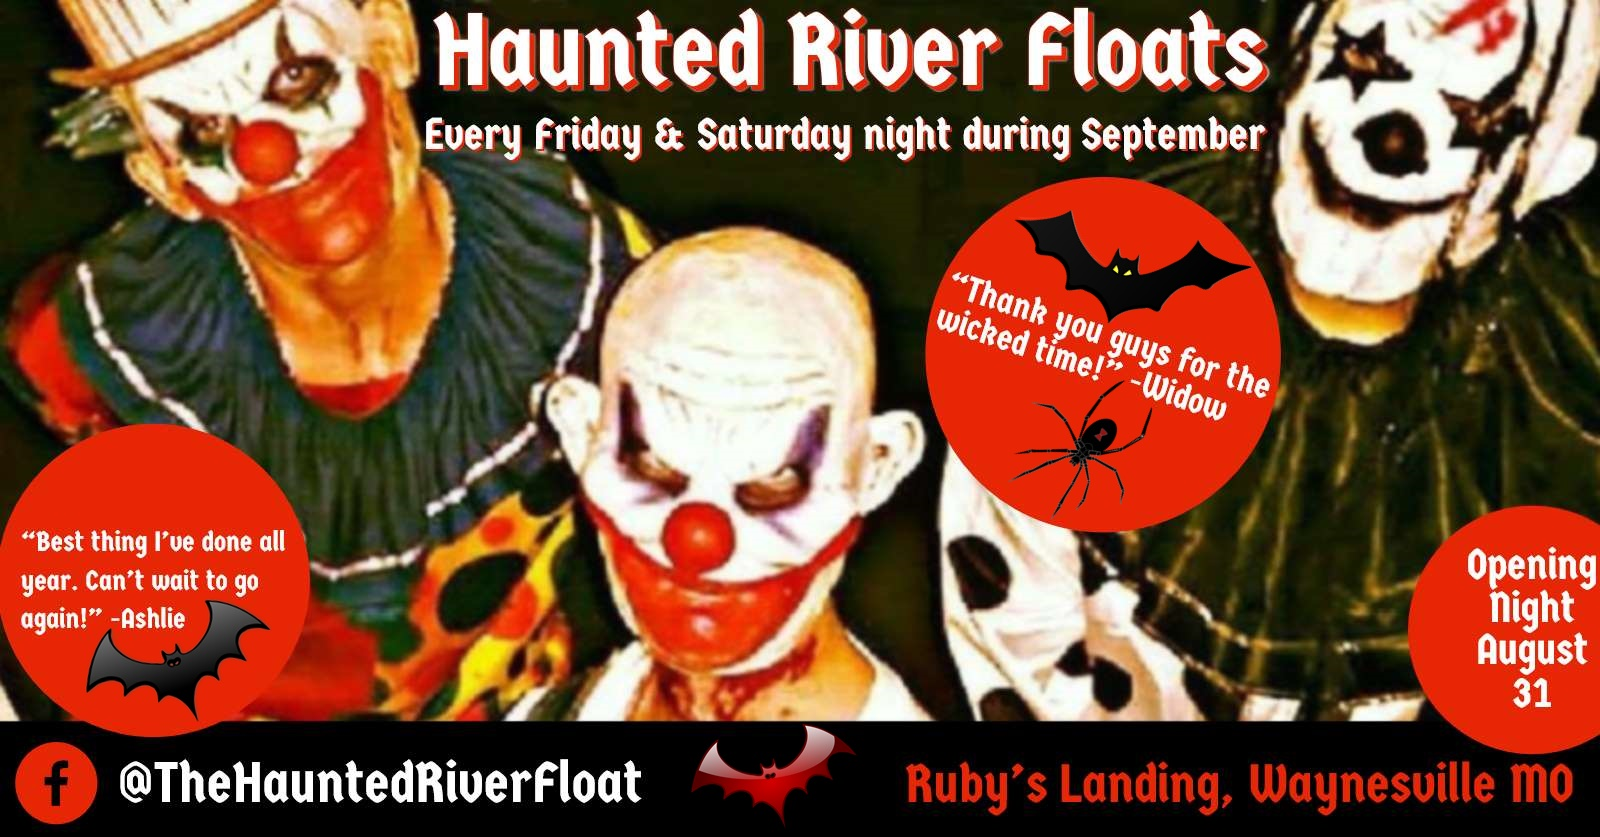 Haunted River Floats